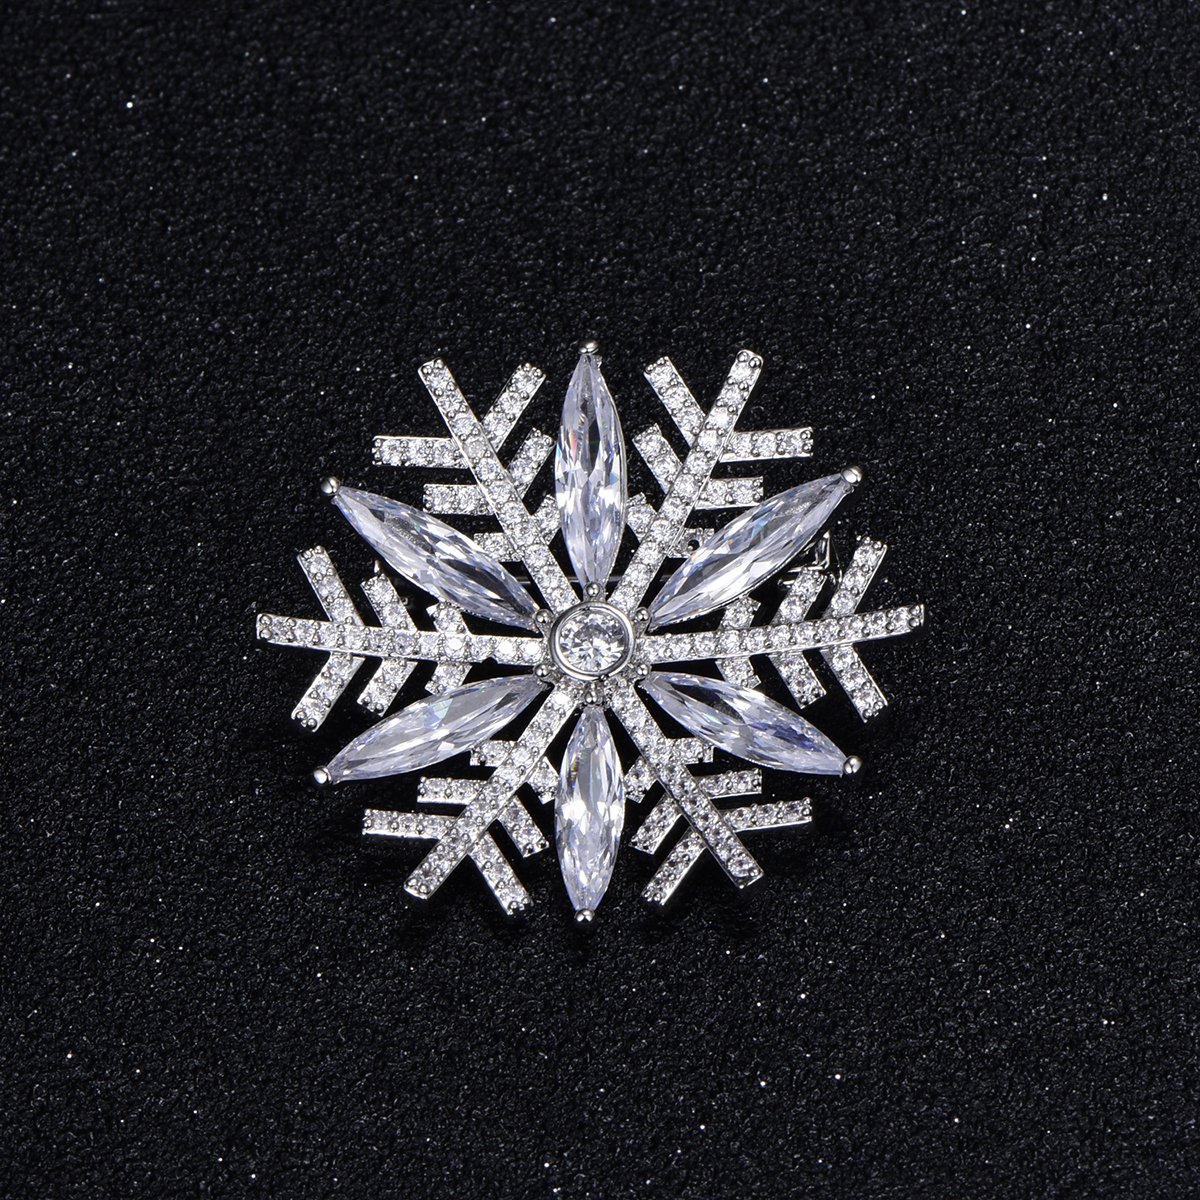 Snowflake Brooch Pins for Women,Dazzling Rhinestone Brooch for Brides Copper Vintage Crystal Brooch Girls CZ Brooch for Wedding,Party (Silver Plated Snowflake) by YOYOMA (Image #3)